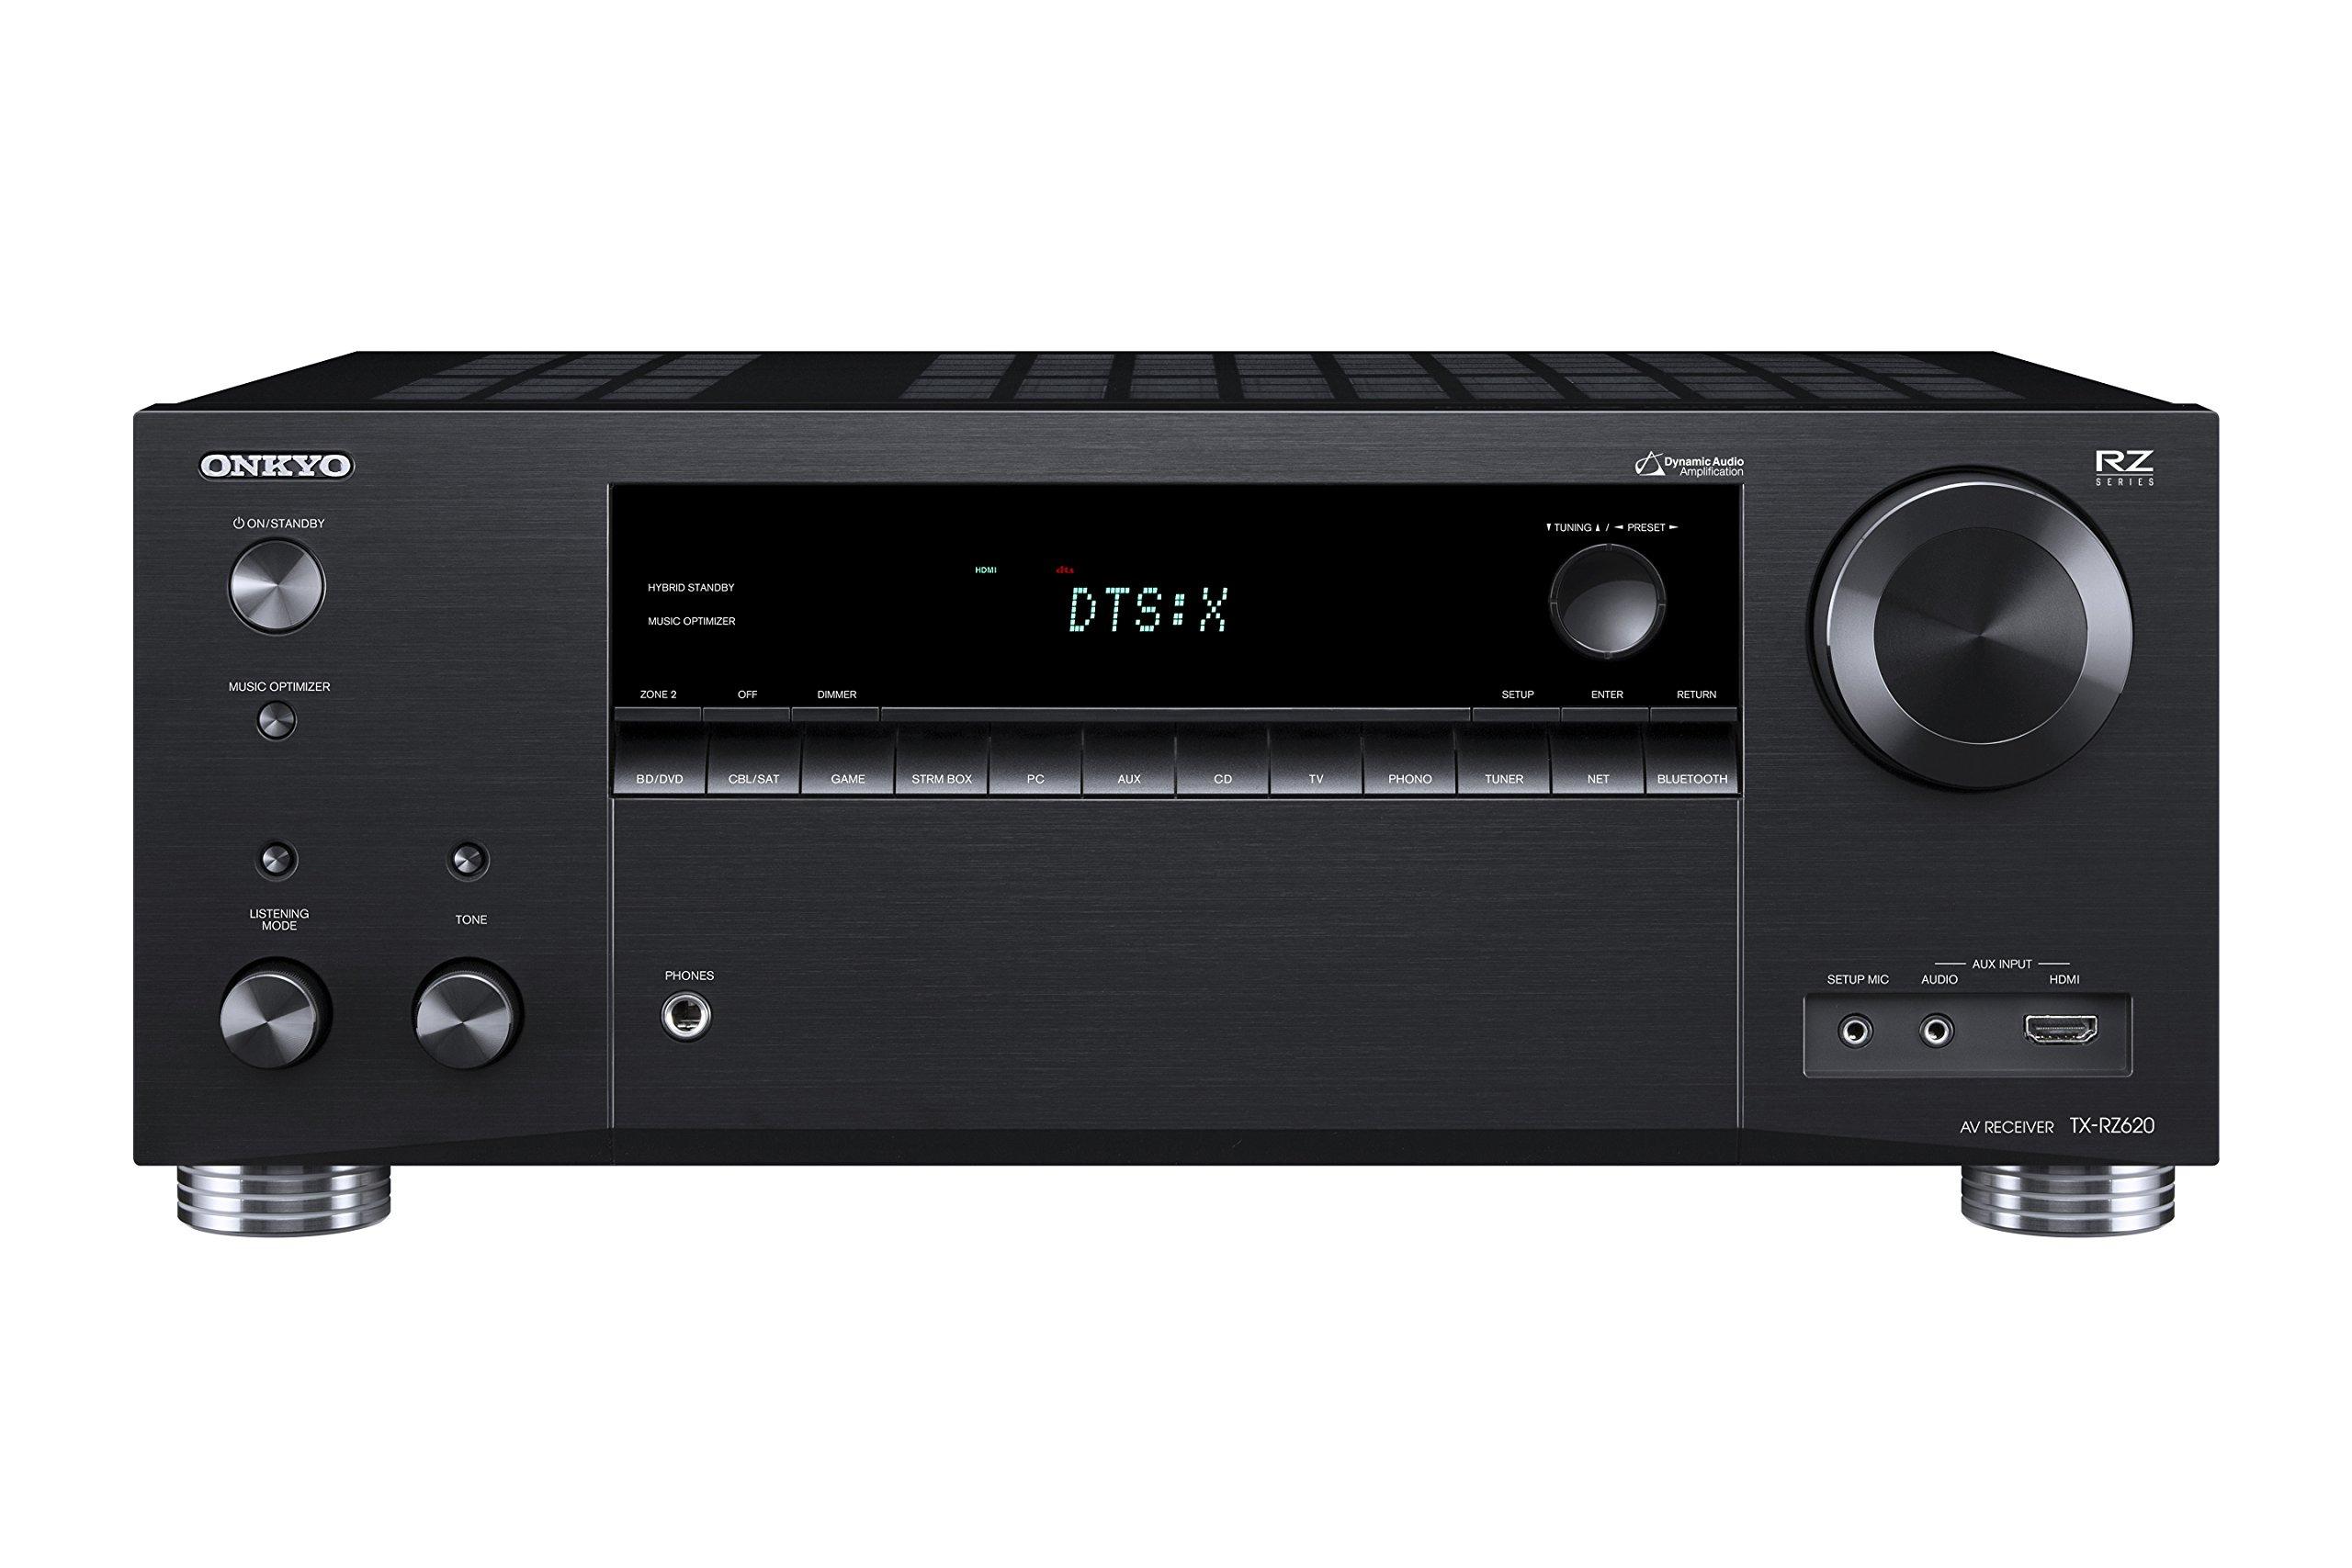 Onkyo TX-RZ620 7.2 Channel Network A/V Receiver by Onkyo